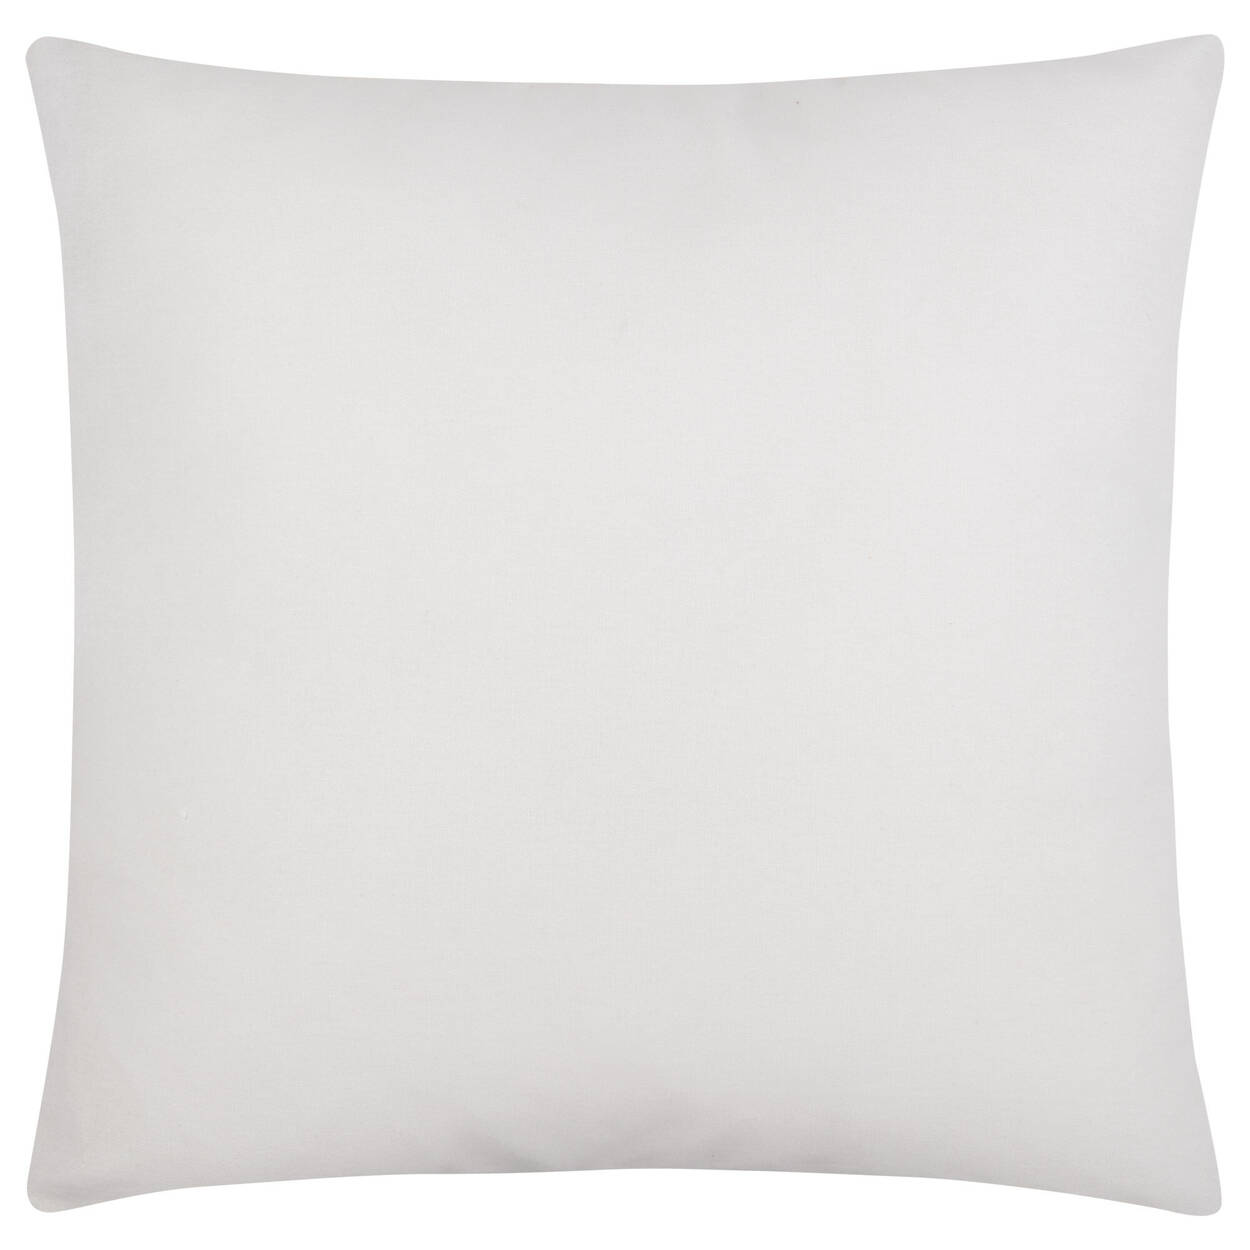 "Namasté Decorative Pillow Cover 18"" X 18"""